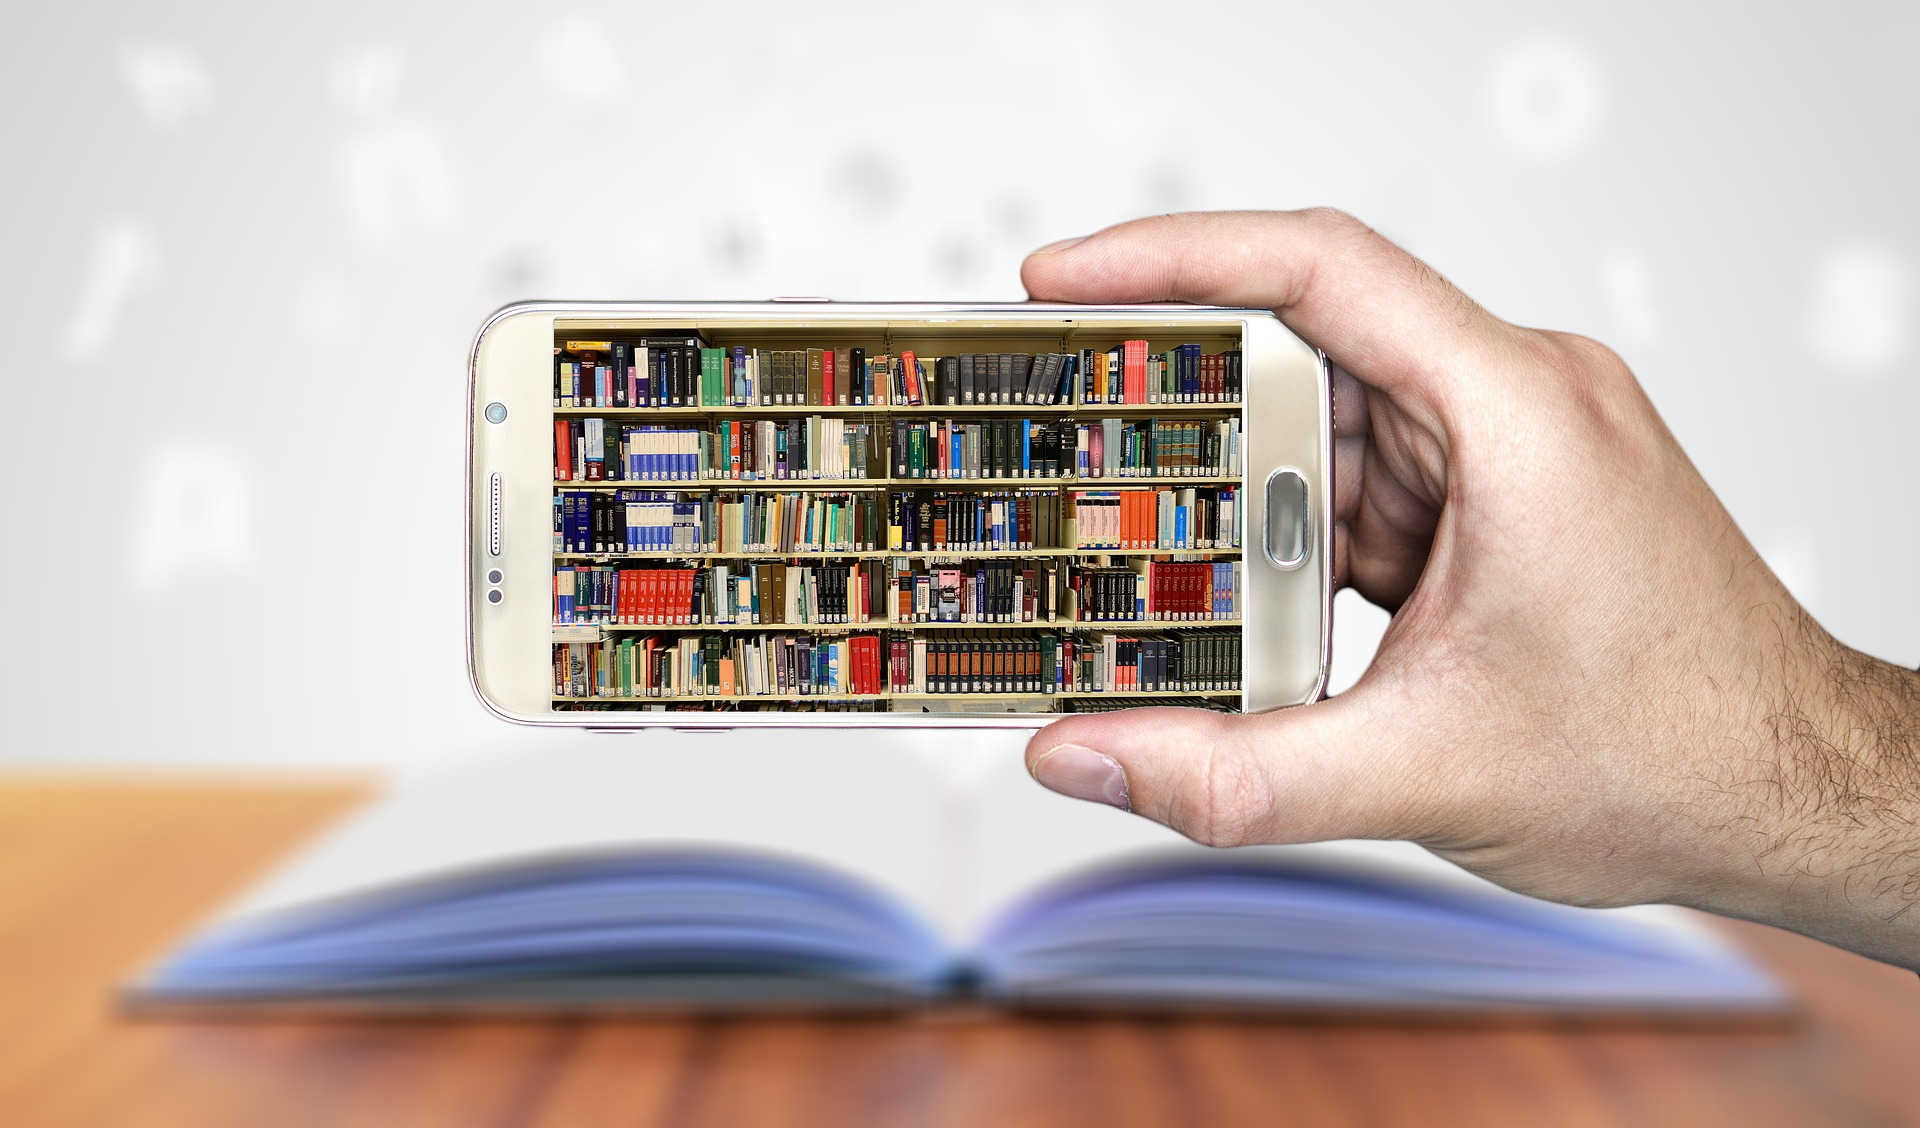 Smart phone with picture of library books held by a human hand with a hardcover book in the background